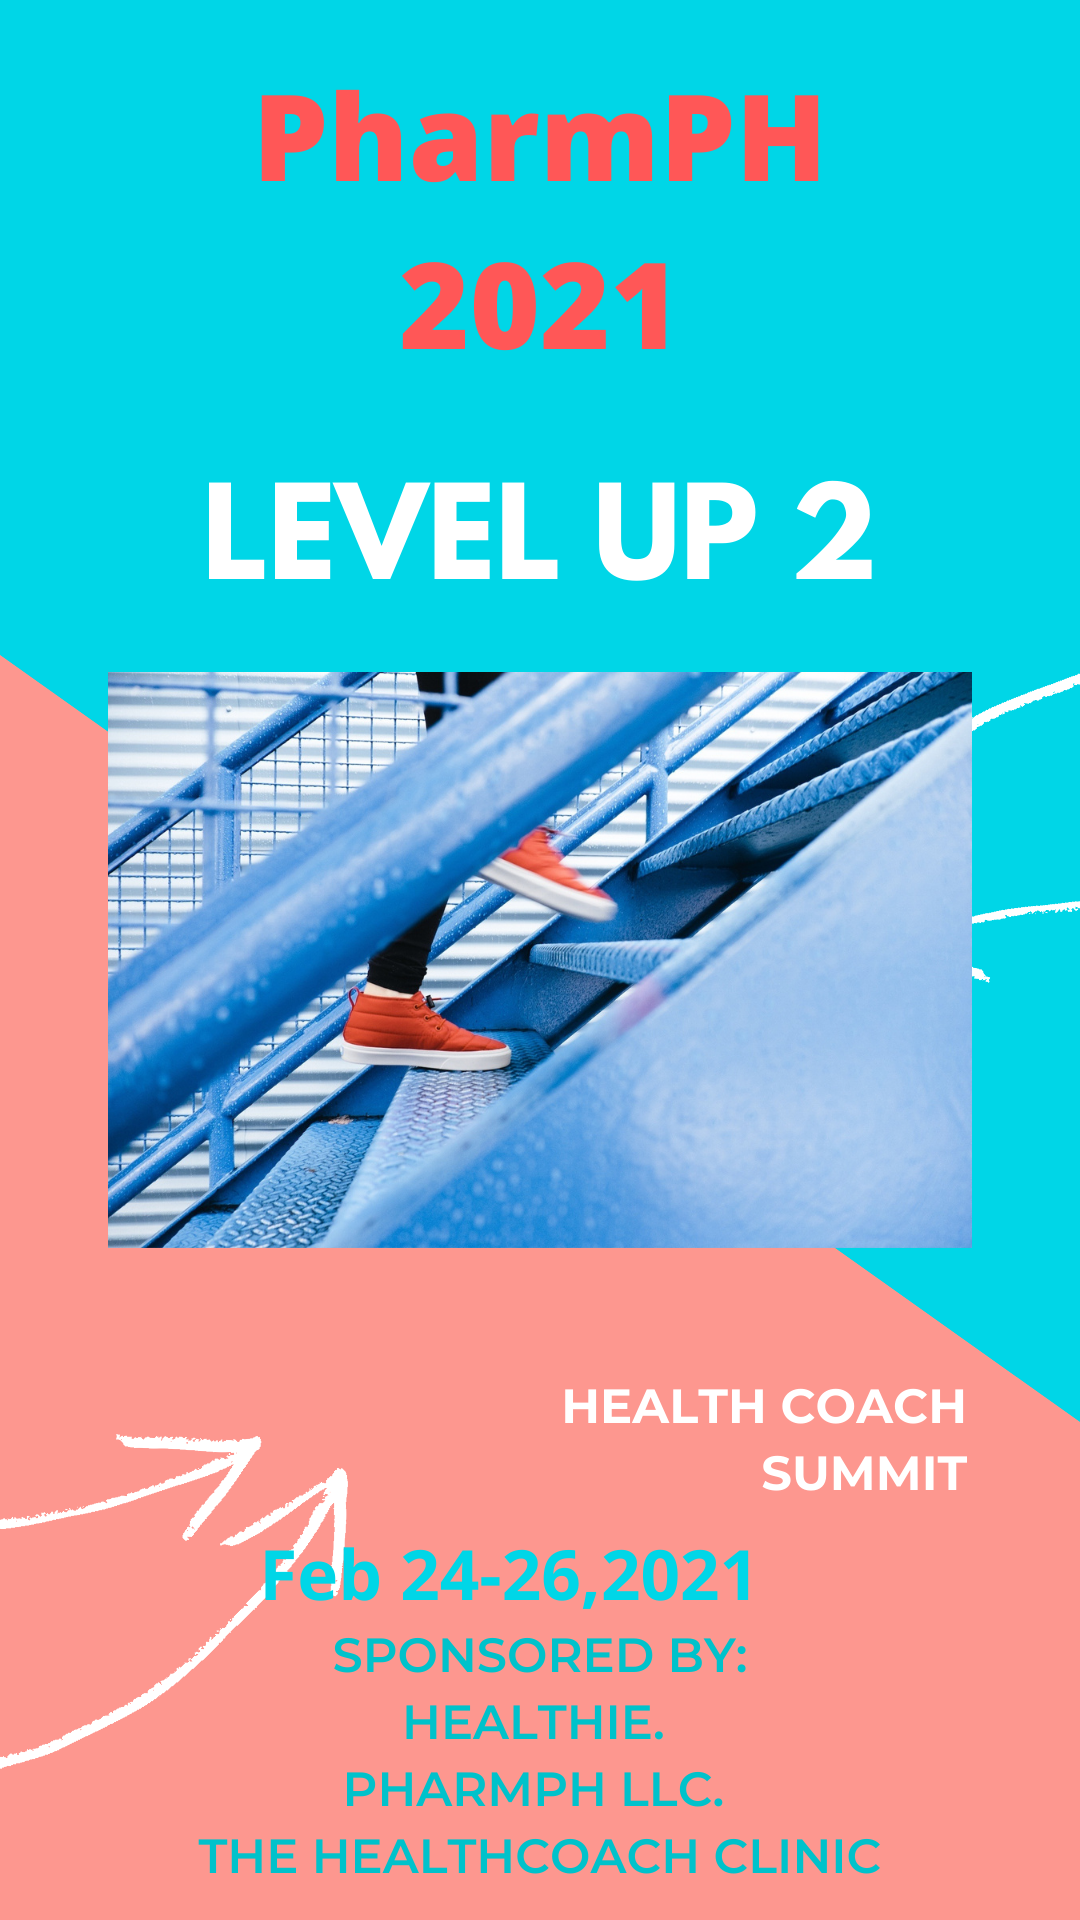 PharmPH Announces Level UP 2 Health Coach Summit for Health Coaches